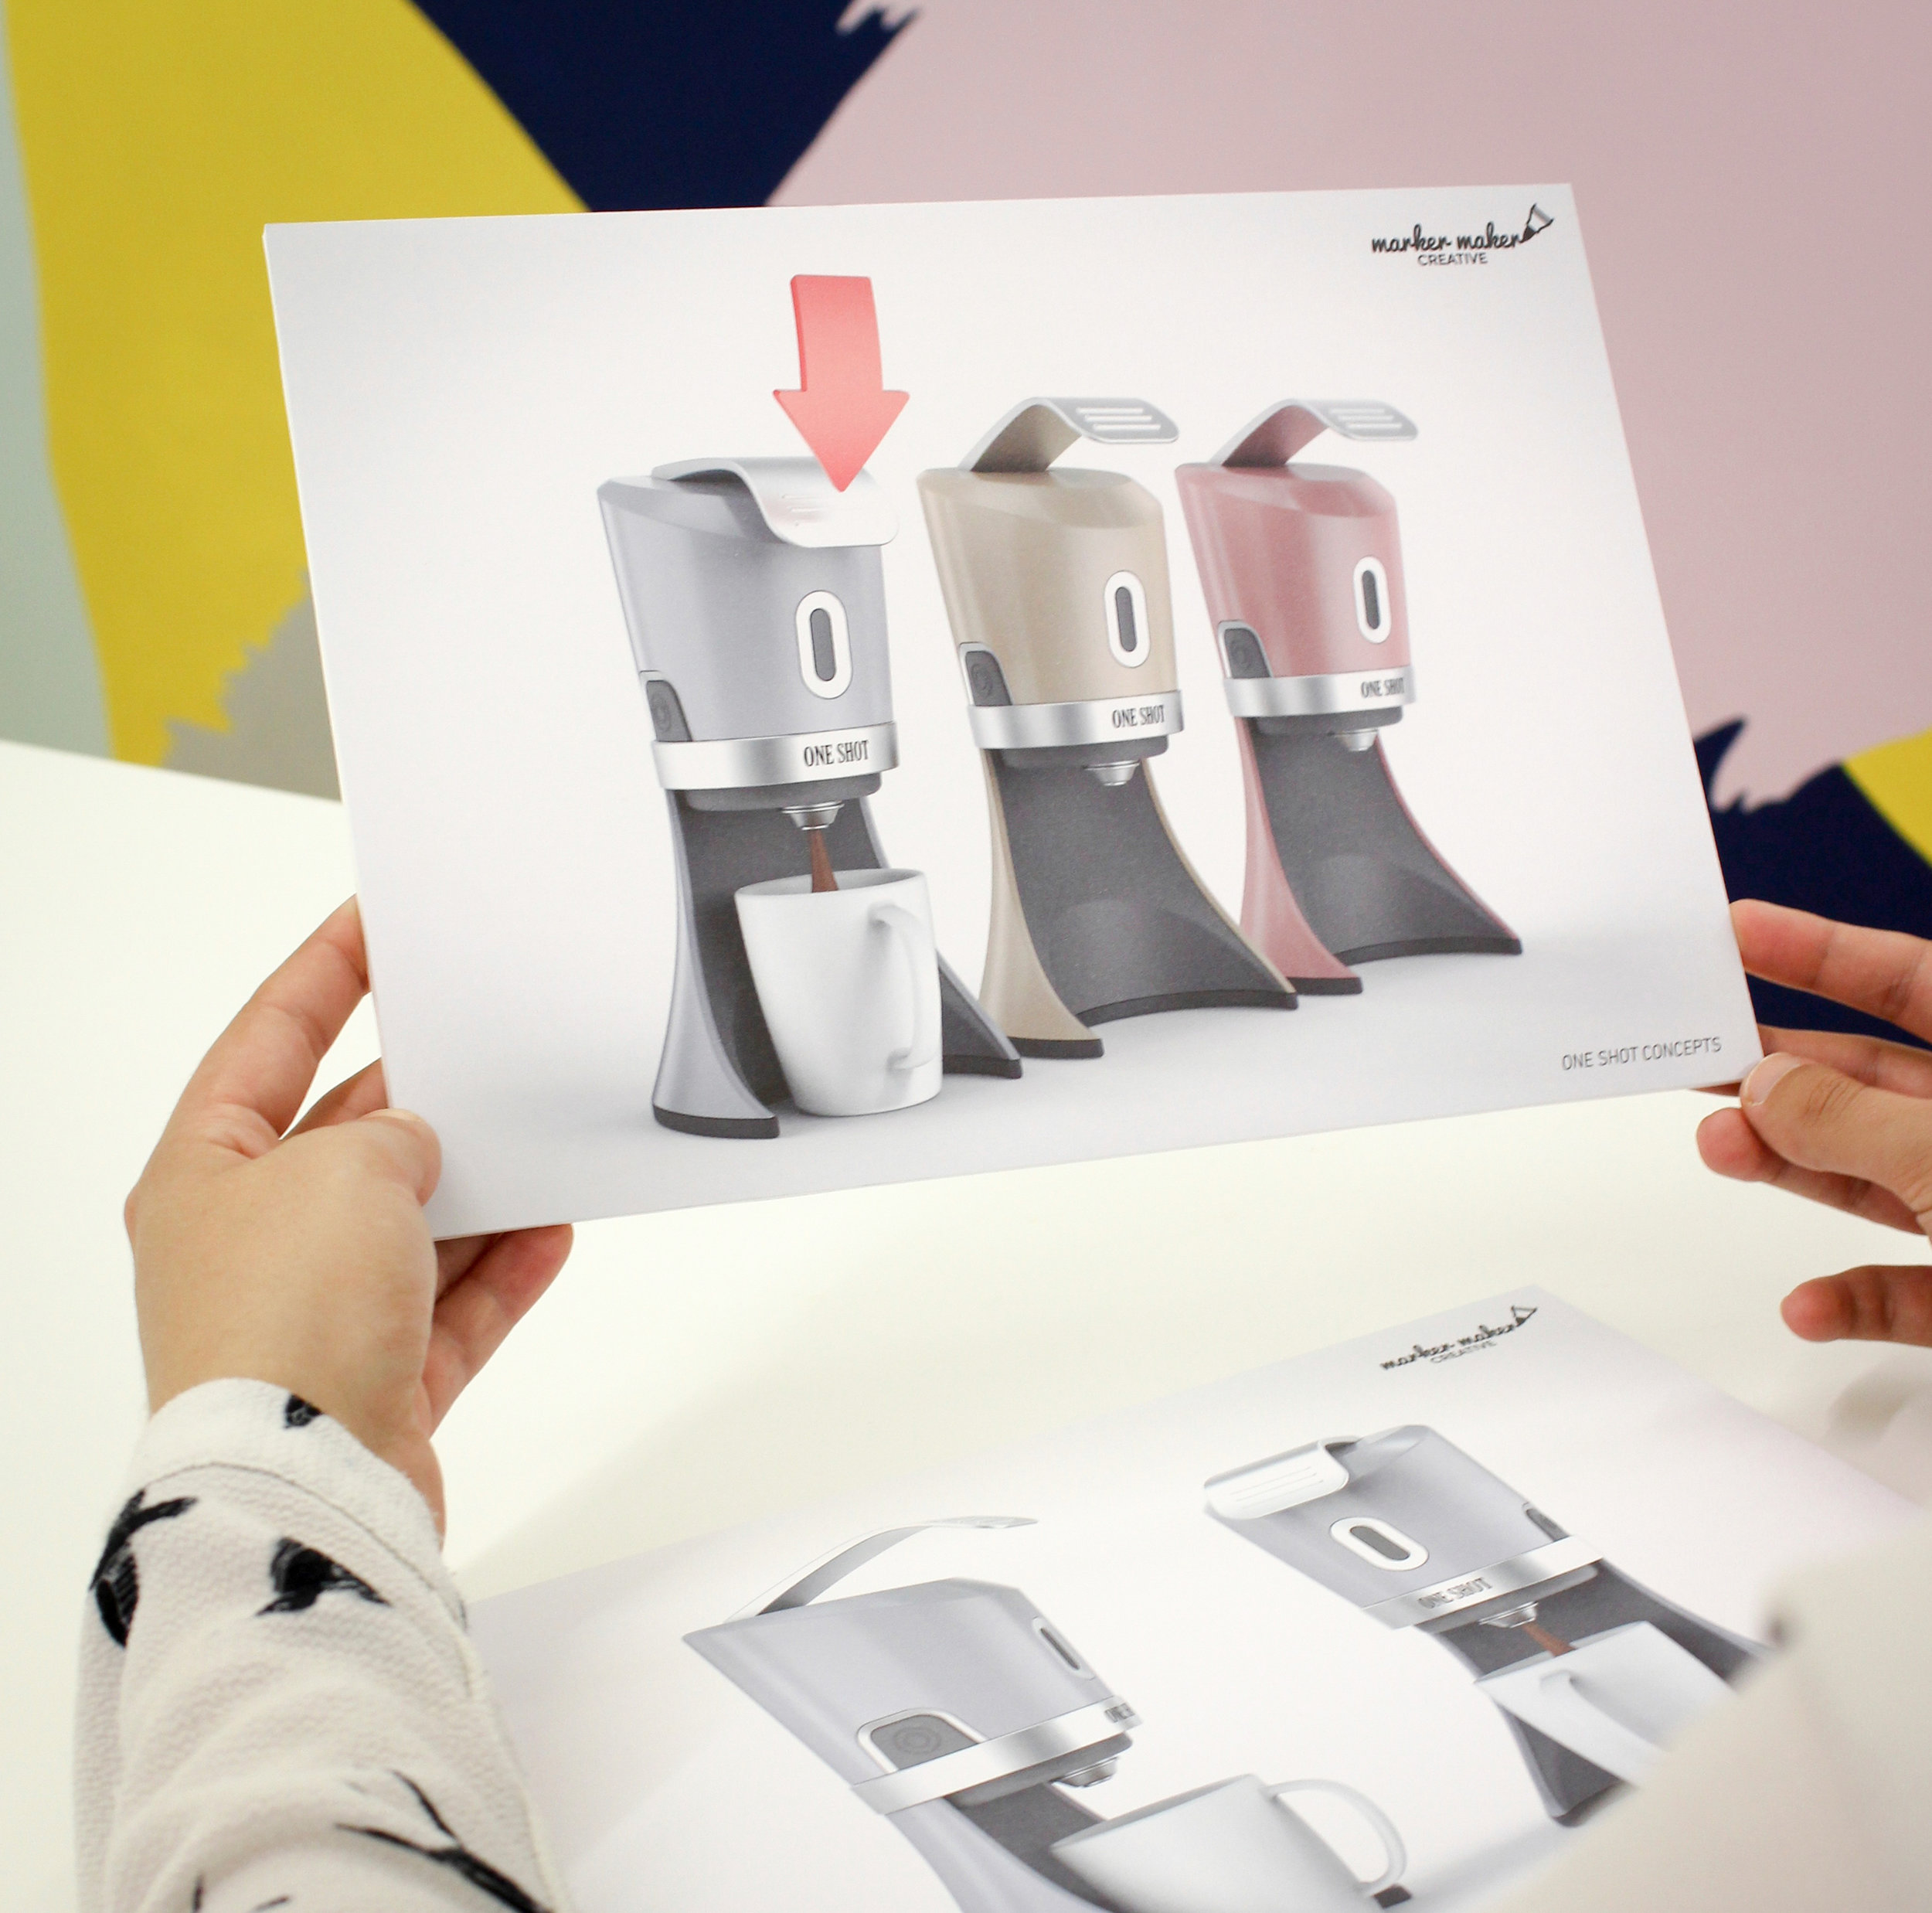 Production of high impact photorealistic computer rendering to allow clients to view and evaluate their product and packaging ideas